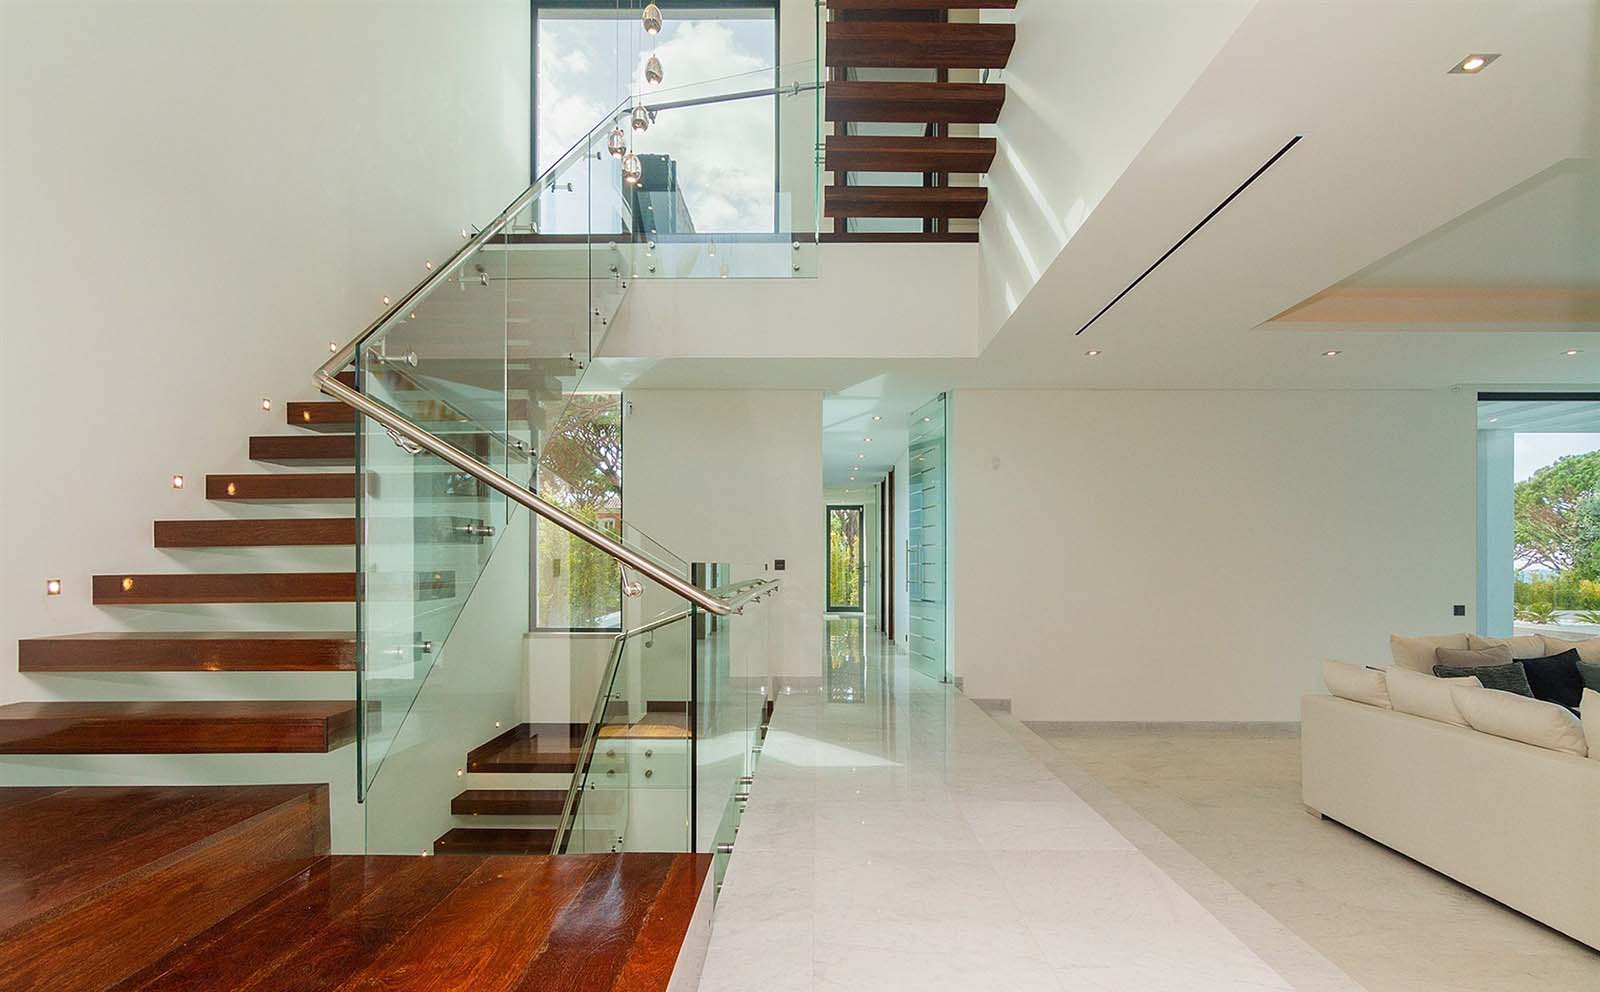 Modern floating wood steps with glass railing. These steps appear to come straight through the walls